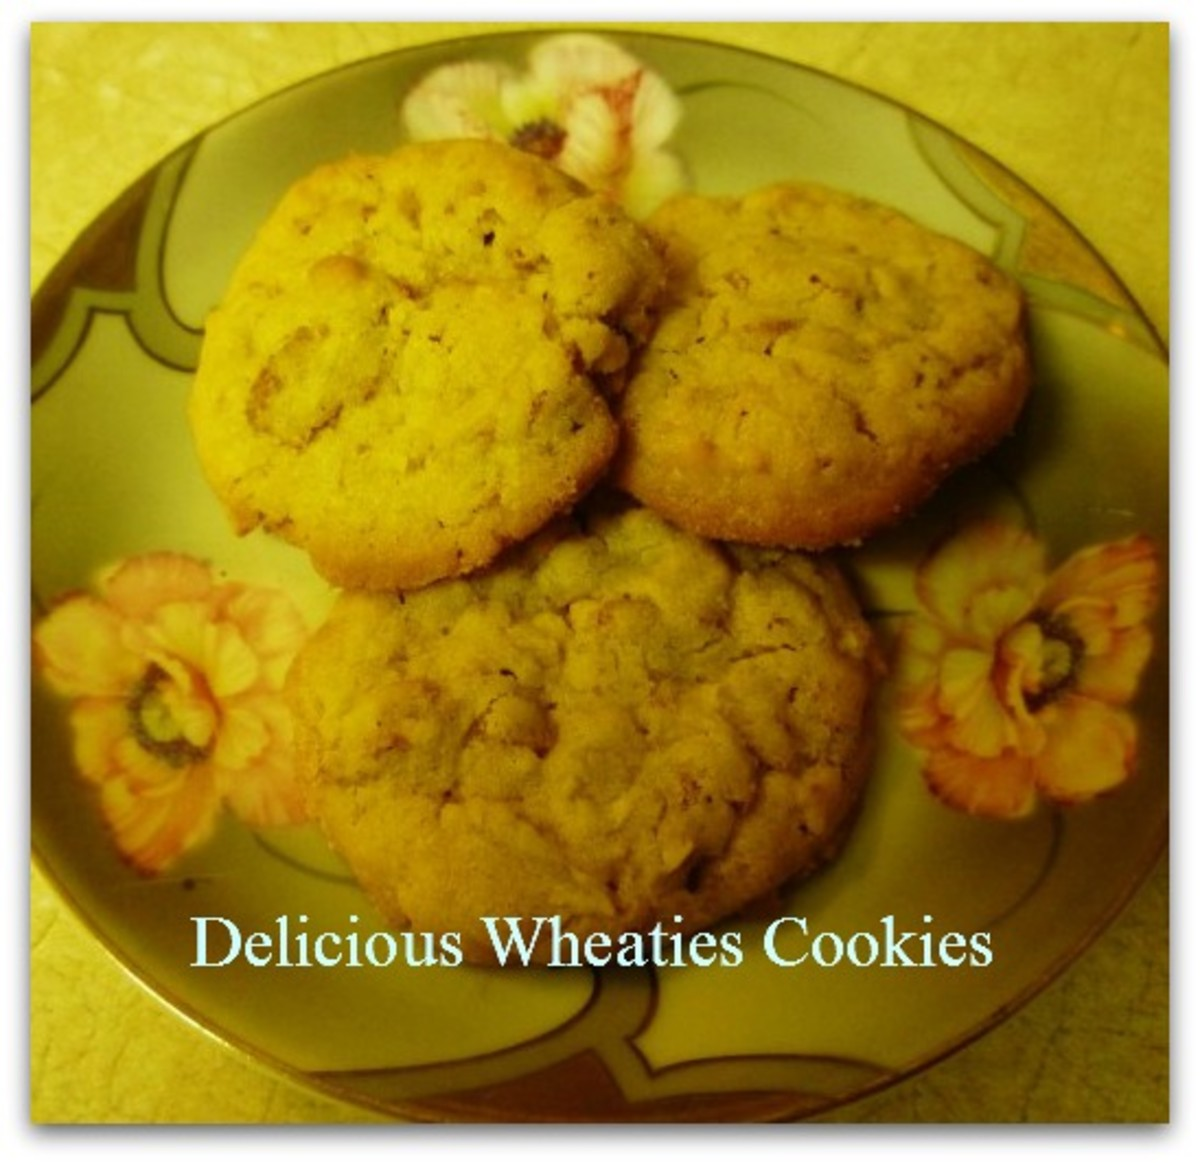 Wheaties Cookies: Easy-to-Make Recipe With Step-by-Step Photos